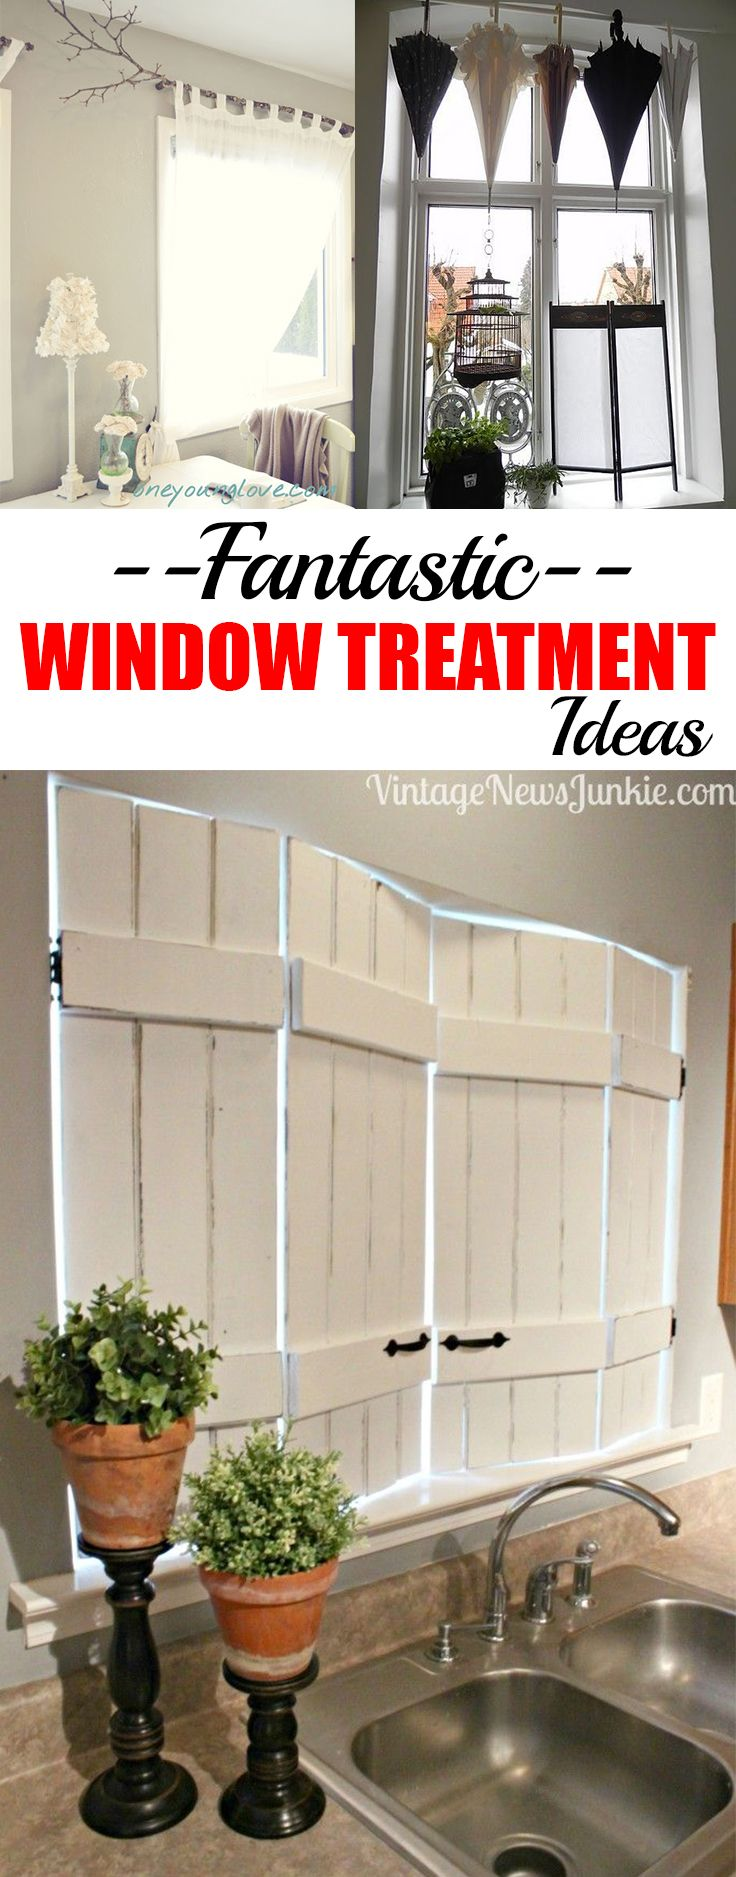 Unique window treatments - Best 25 Unique Curtains Ideas On Pinterest Drapes Curtains Curtain Scarf Ideas And Window Curtain Designs